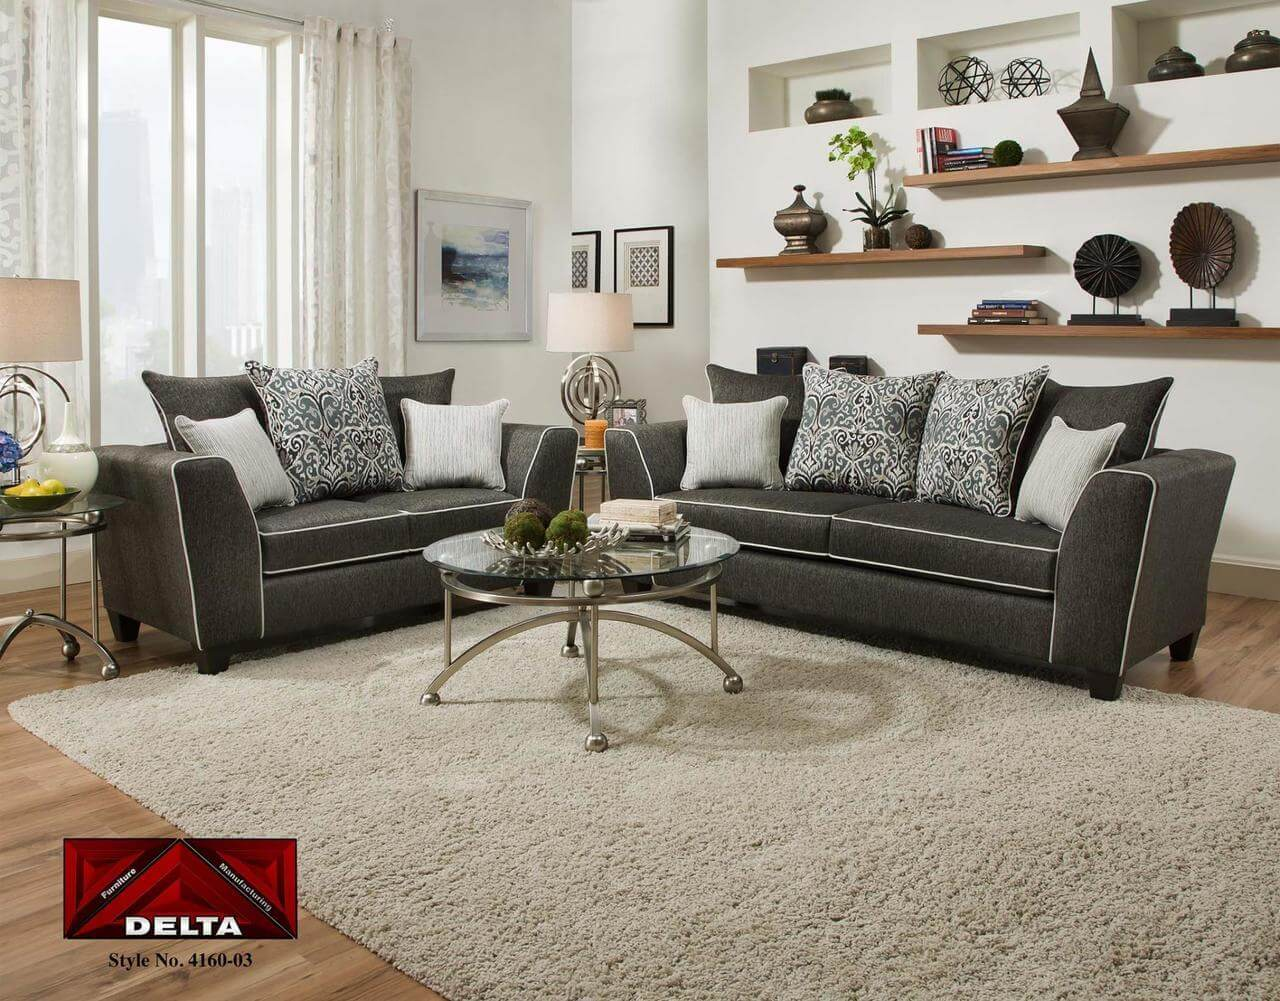 Sofa Outlet Paisley 4160 Vivid Onyx Sofa And Loveseat